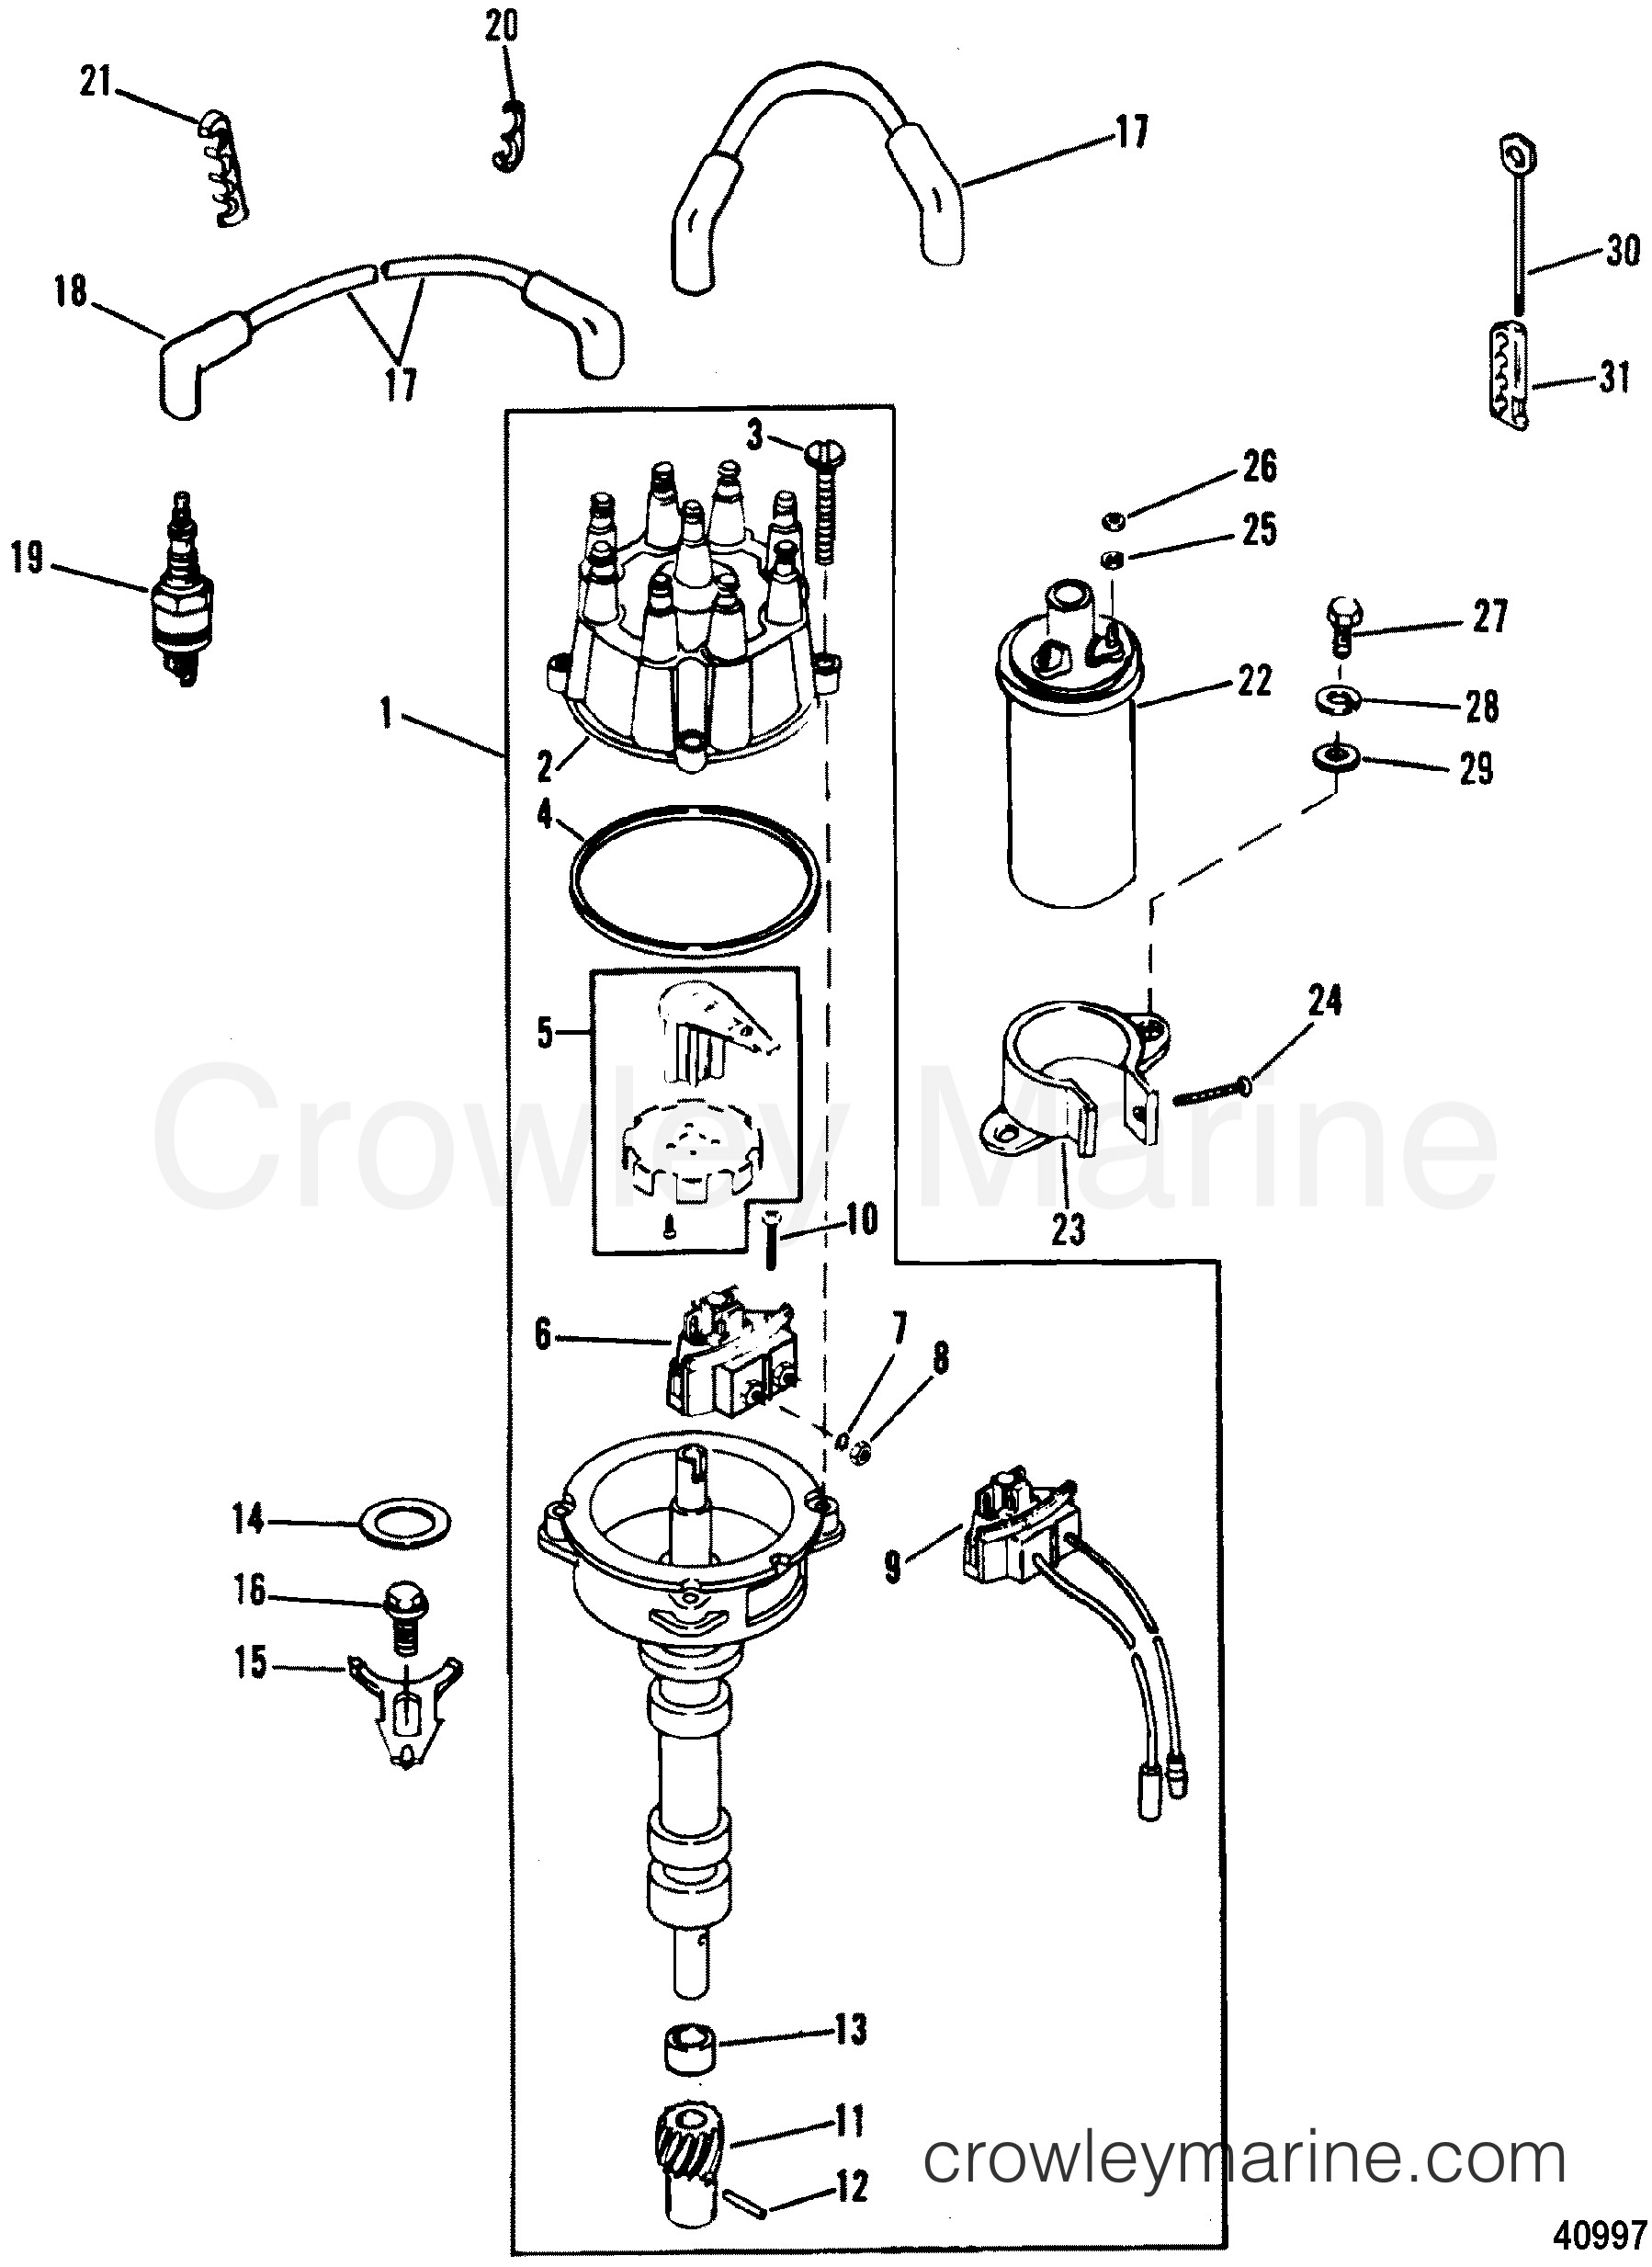 hight resolution of 4 3 mercruiser engine diagram distributor ignition ponents thunderbolt iv ignition 1988 of